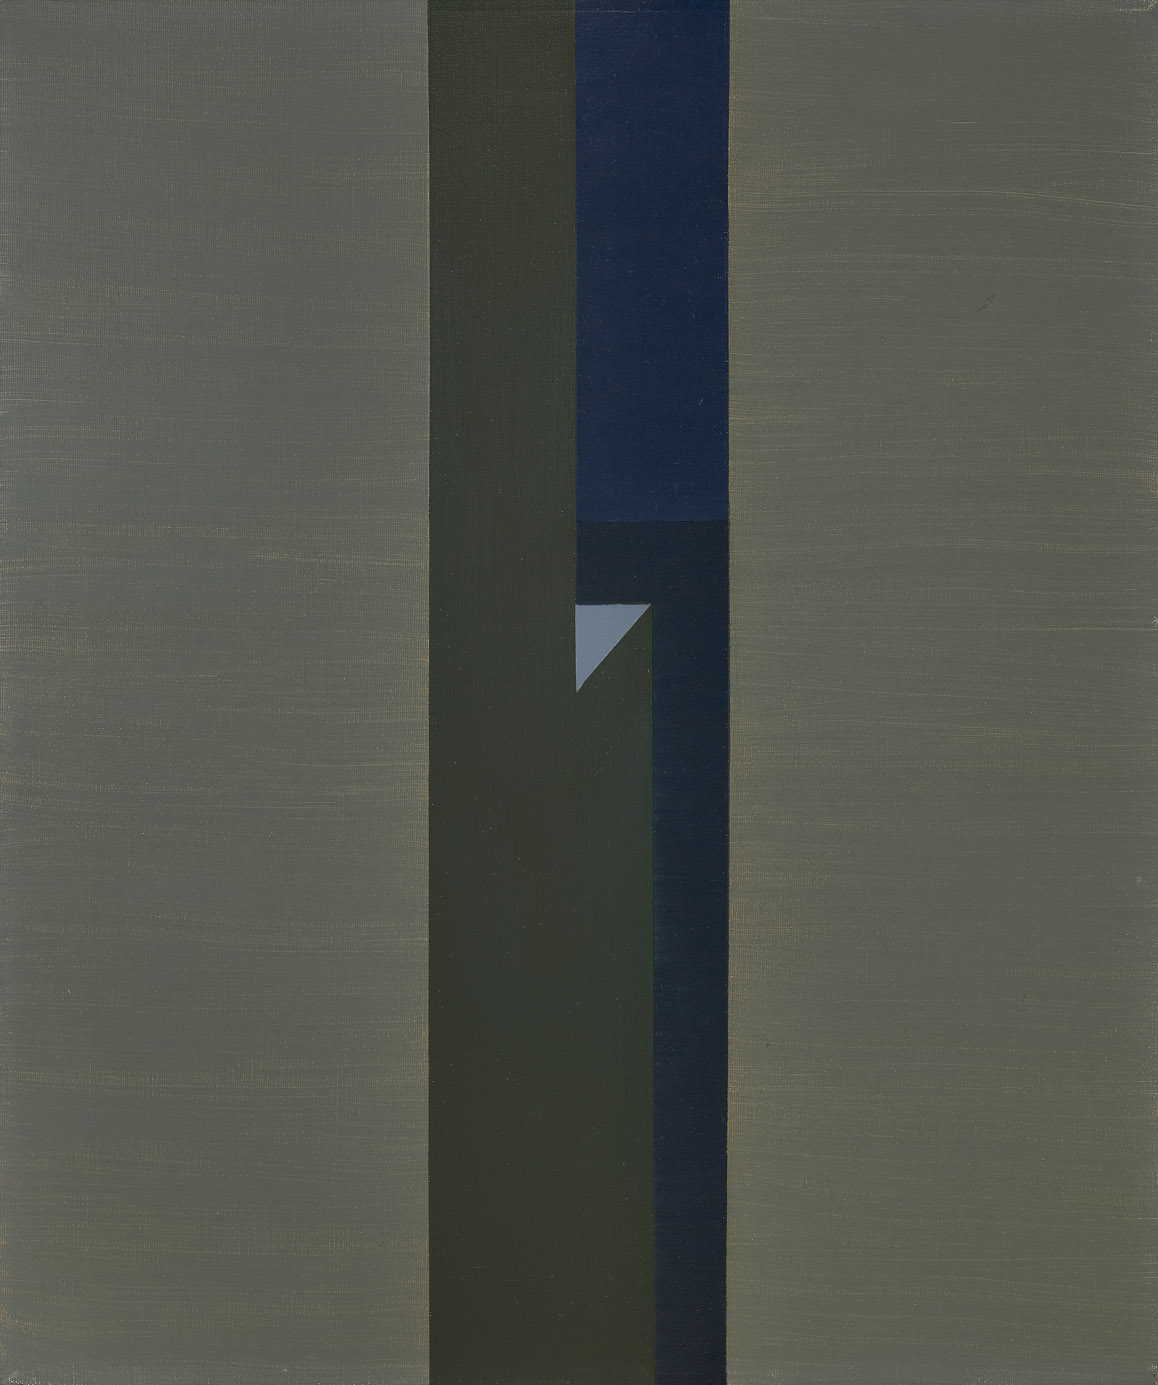 Untitled (Moonlight) , 1961  oil on canvas 24 x 20 inches; 61 x 50.8 centimeters